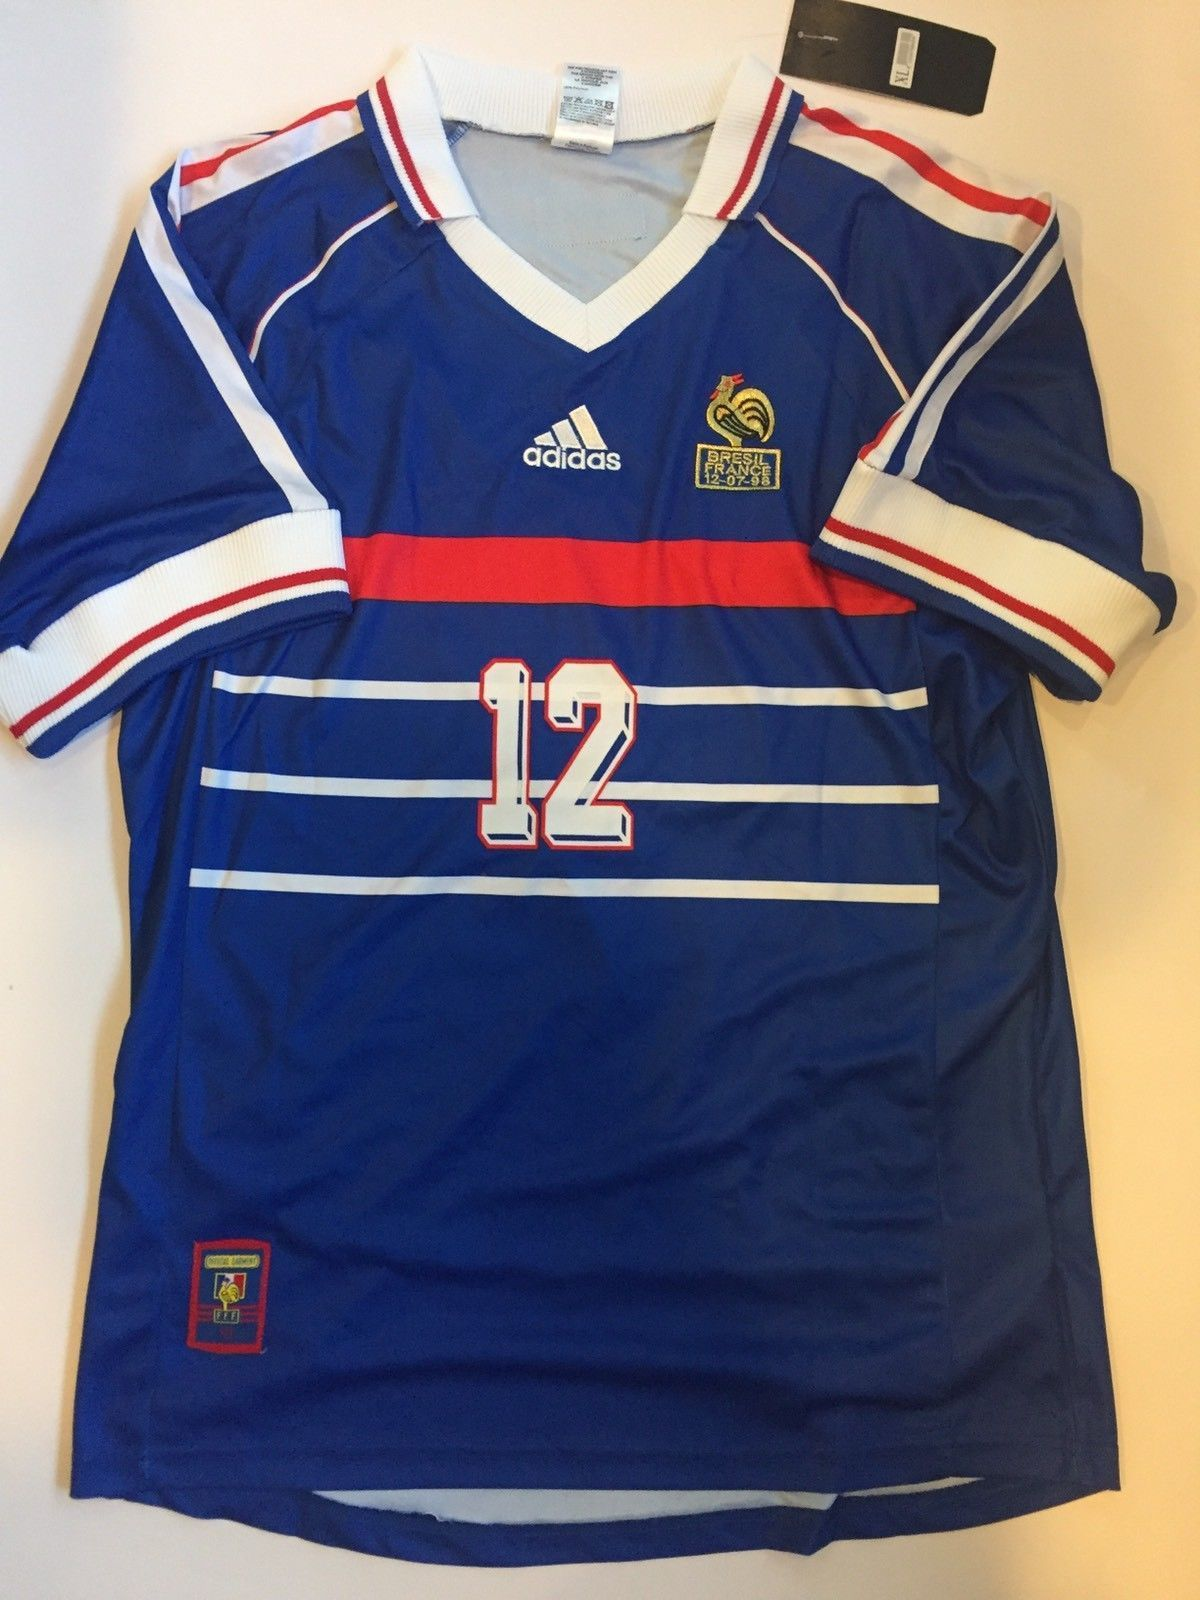 80c5a5ead Henry 1998 France World Cup Retro Soccer Jersey Vintage Classic Football  Shirt